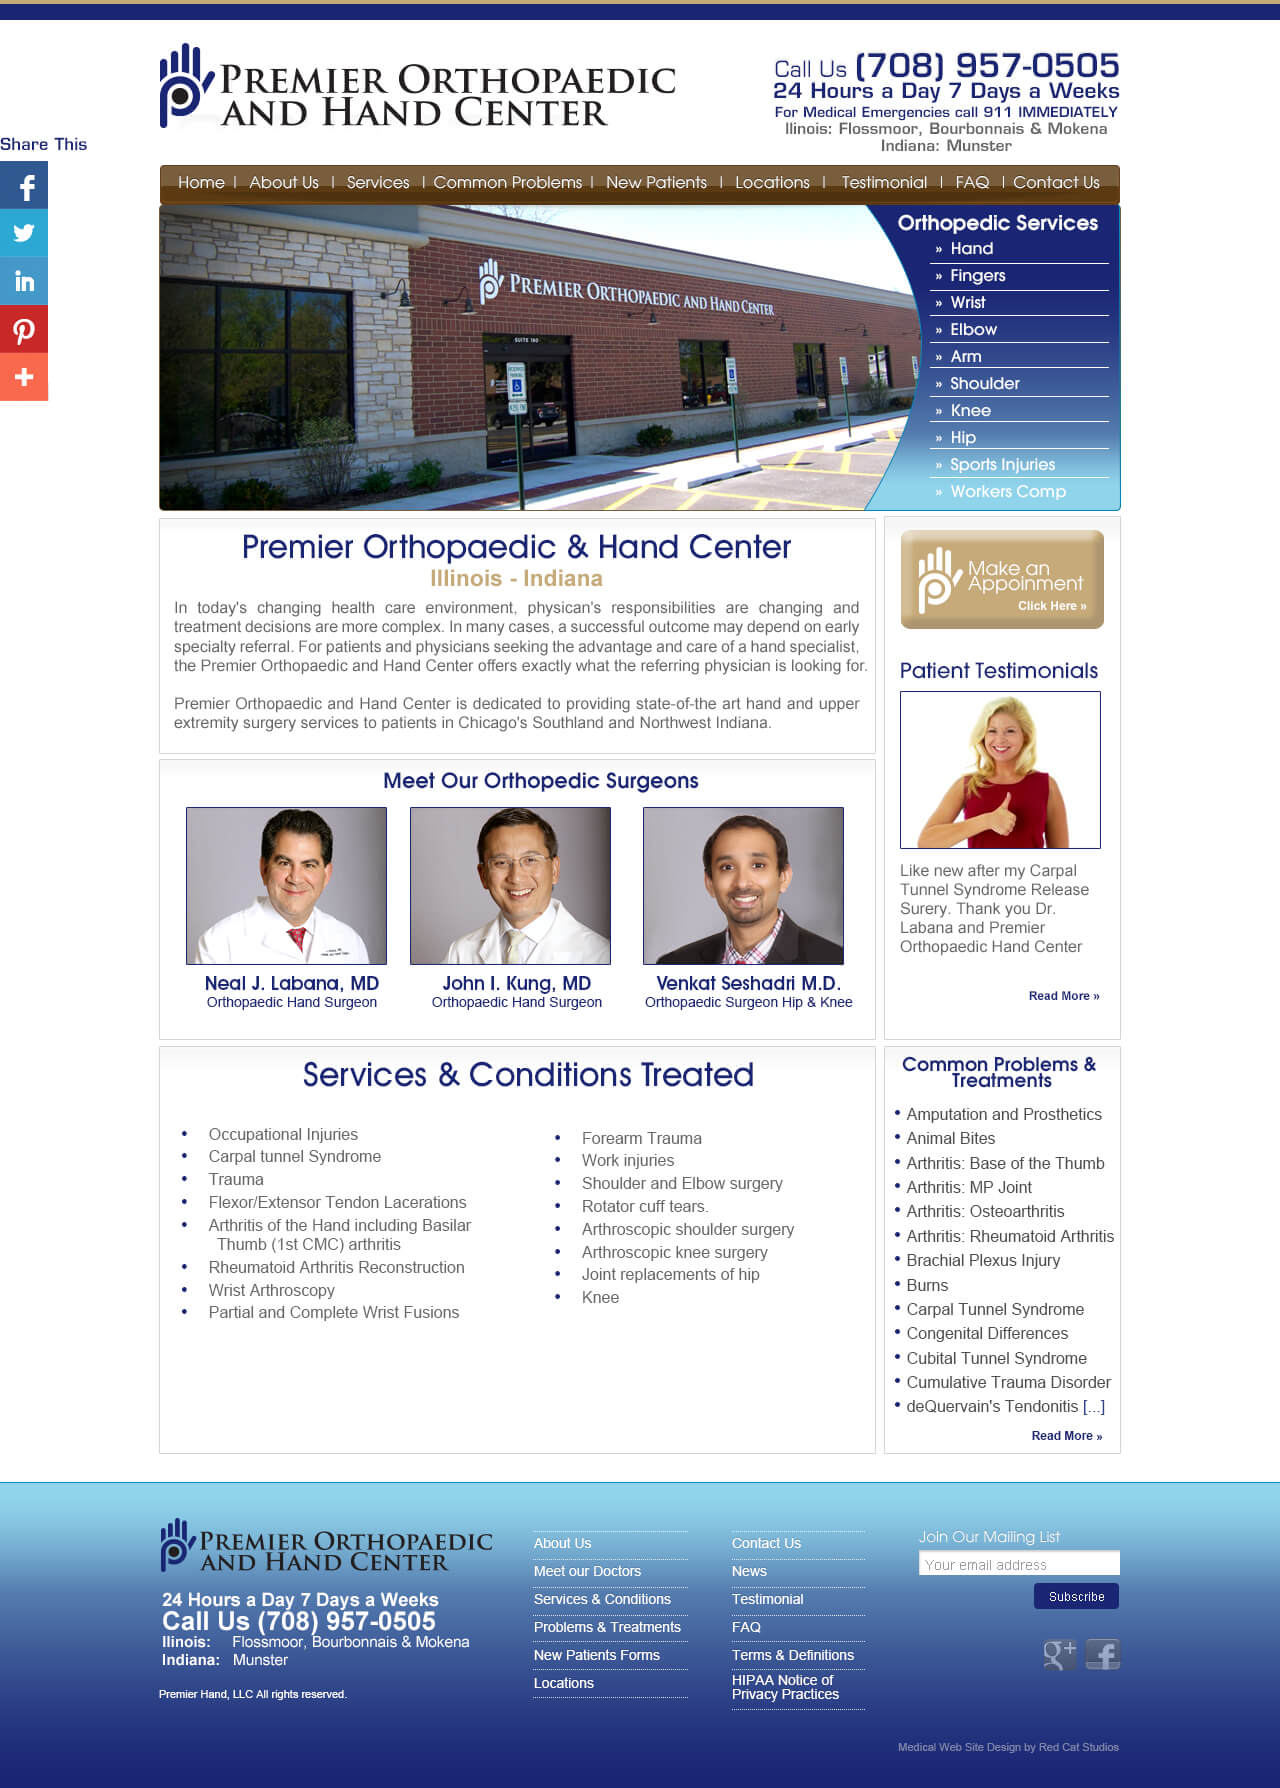 Medical-web-design-WordPress-website